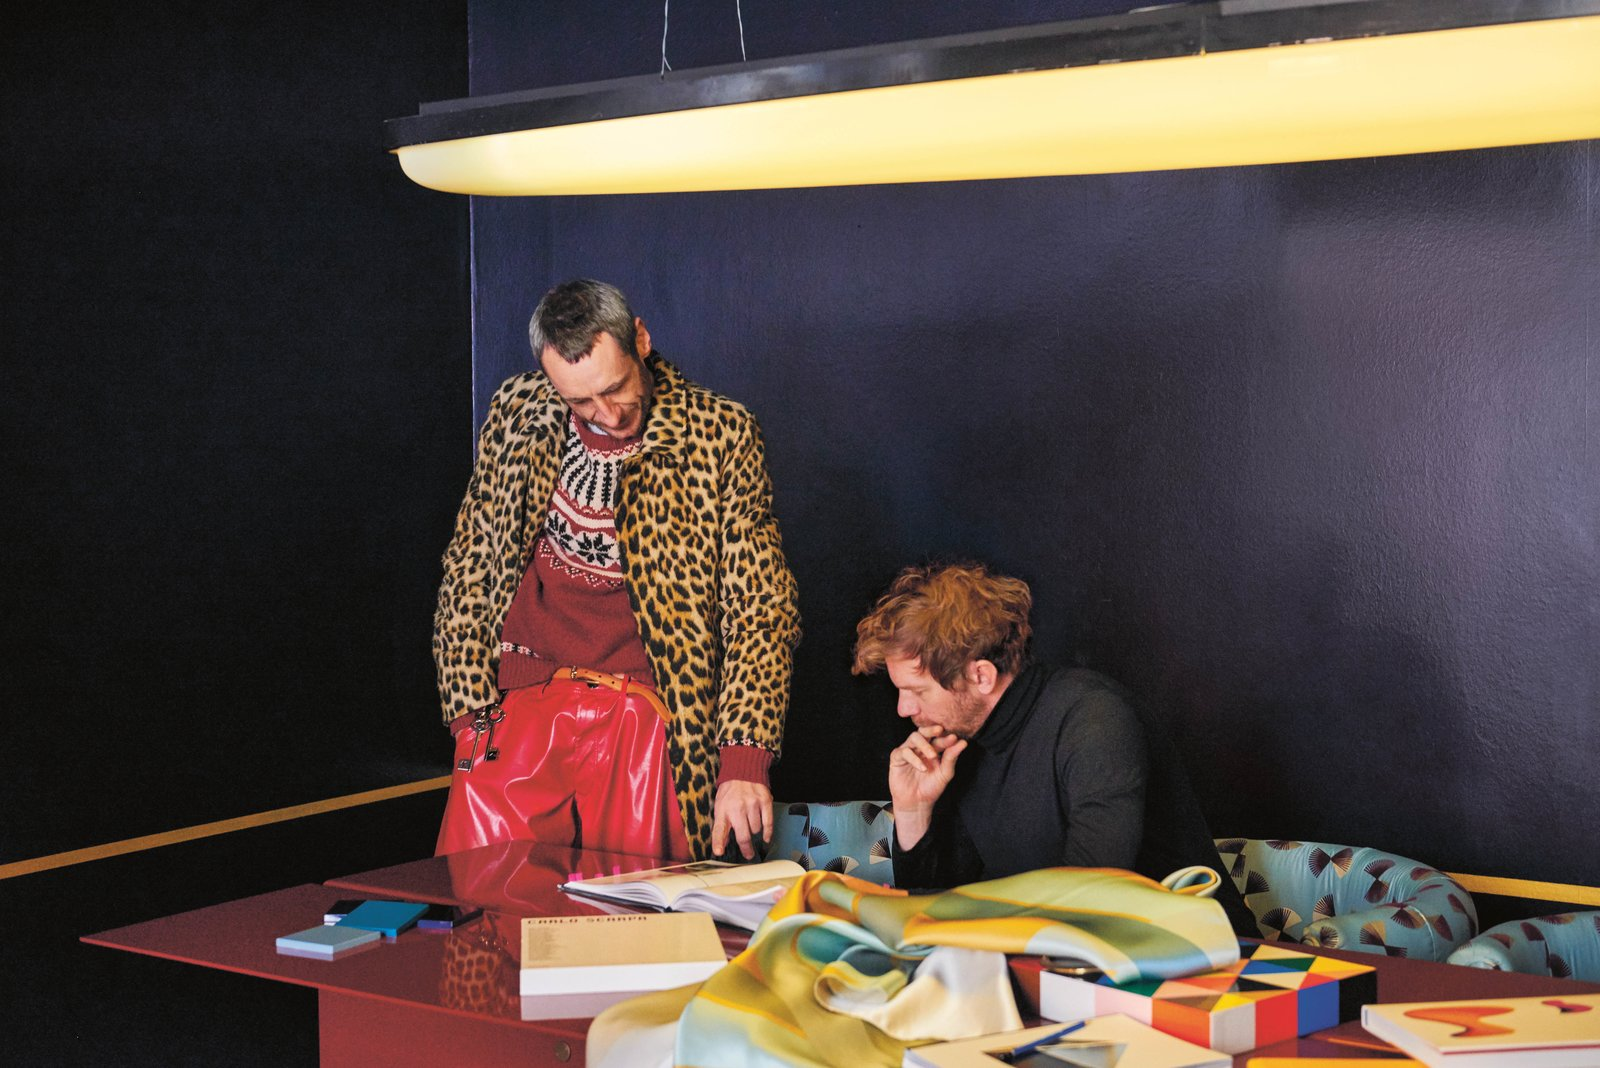 Dimore Studio design team, Britt Moran and Emiliano Salci  Photo 4 of 10 in Meet 40 of the World's Most Creative Entrepreneurs With Kinfolk's New Book